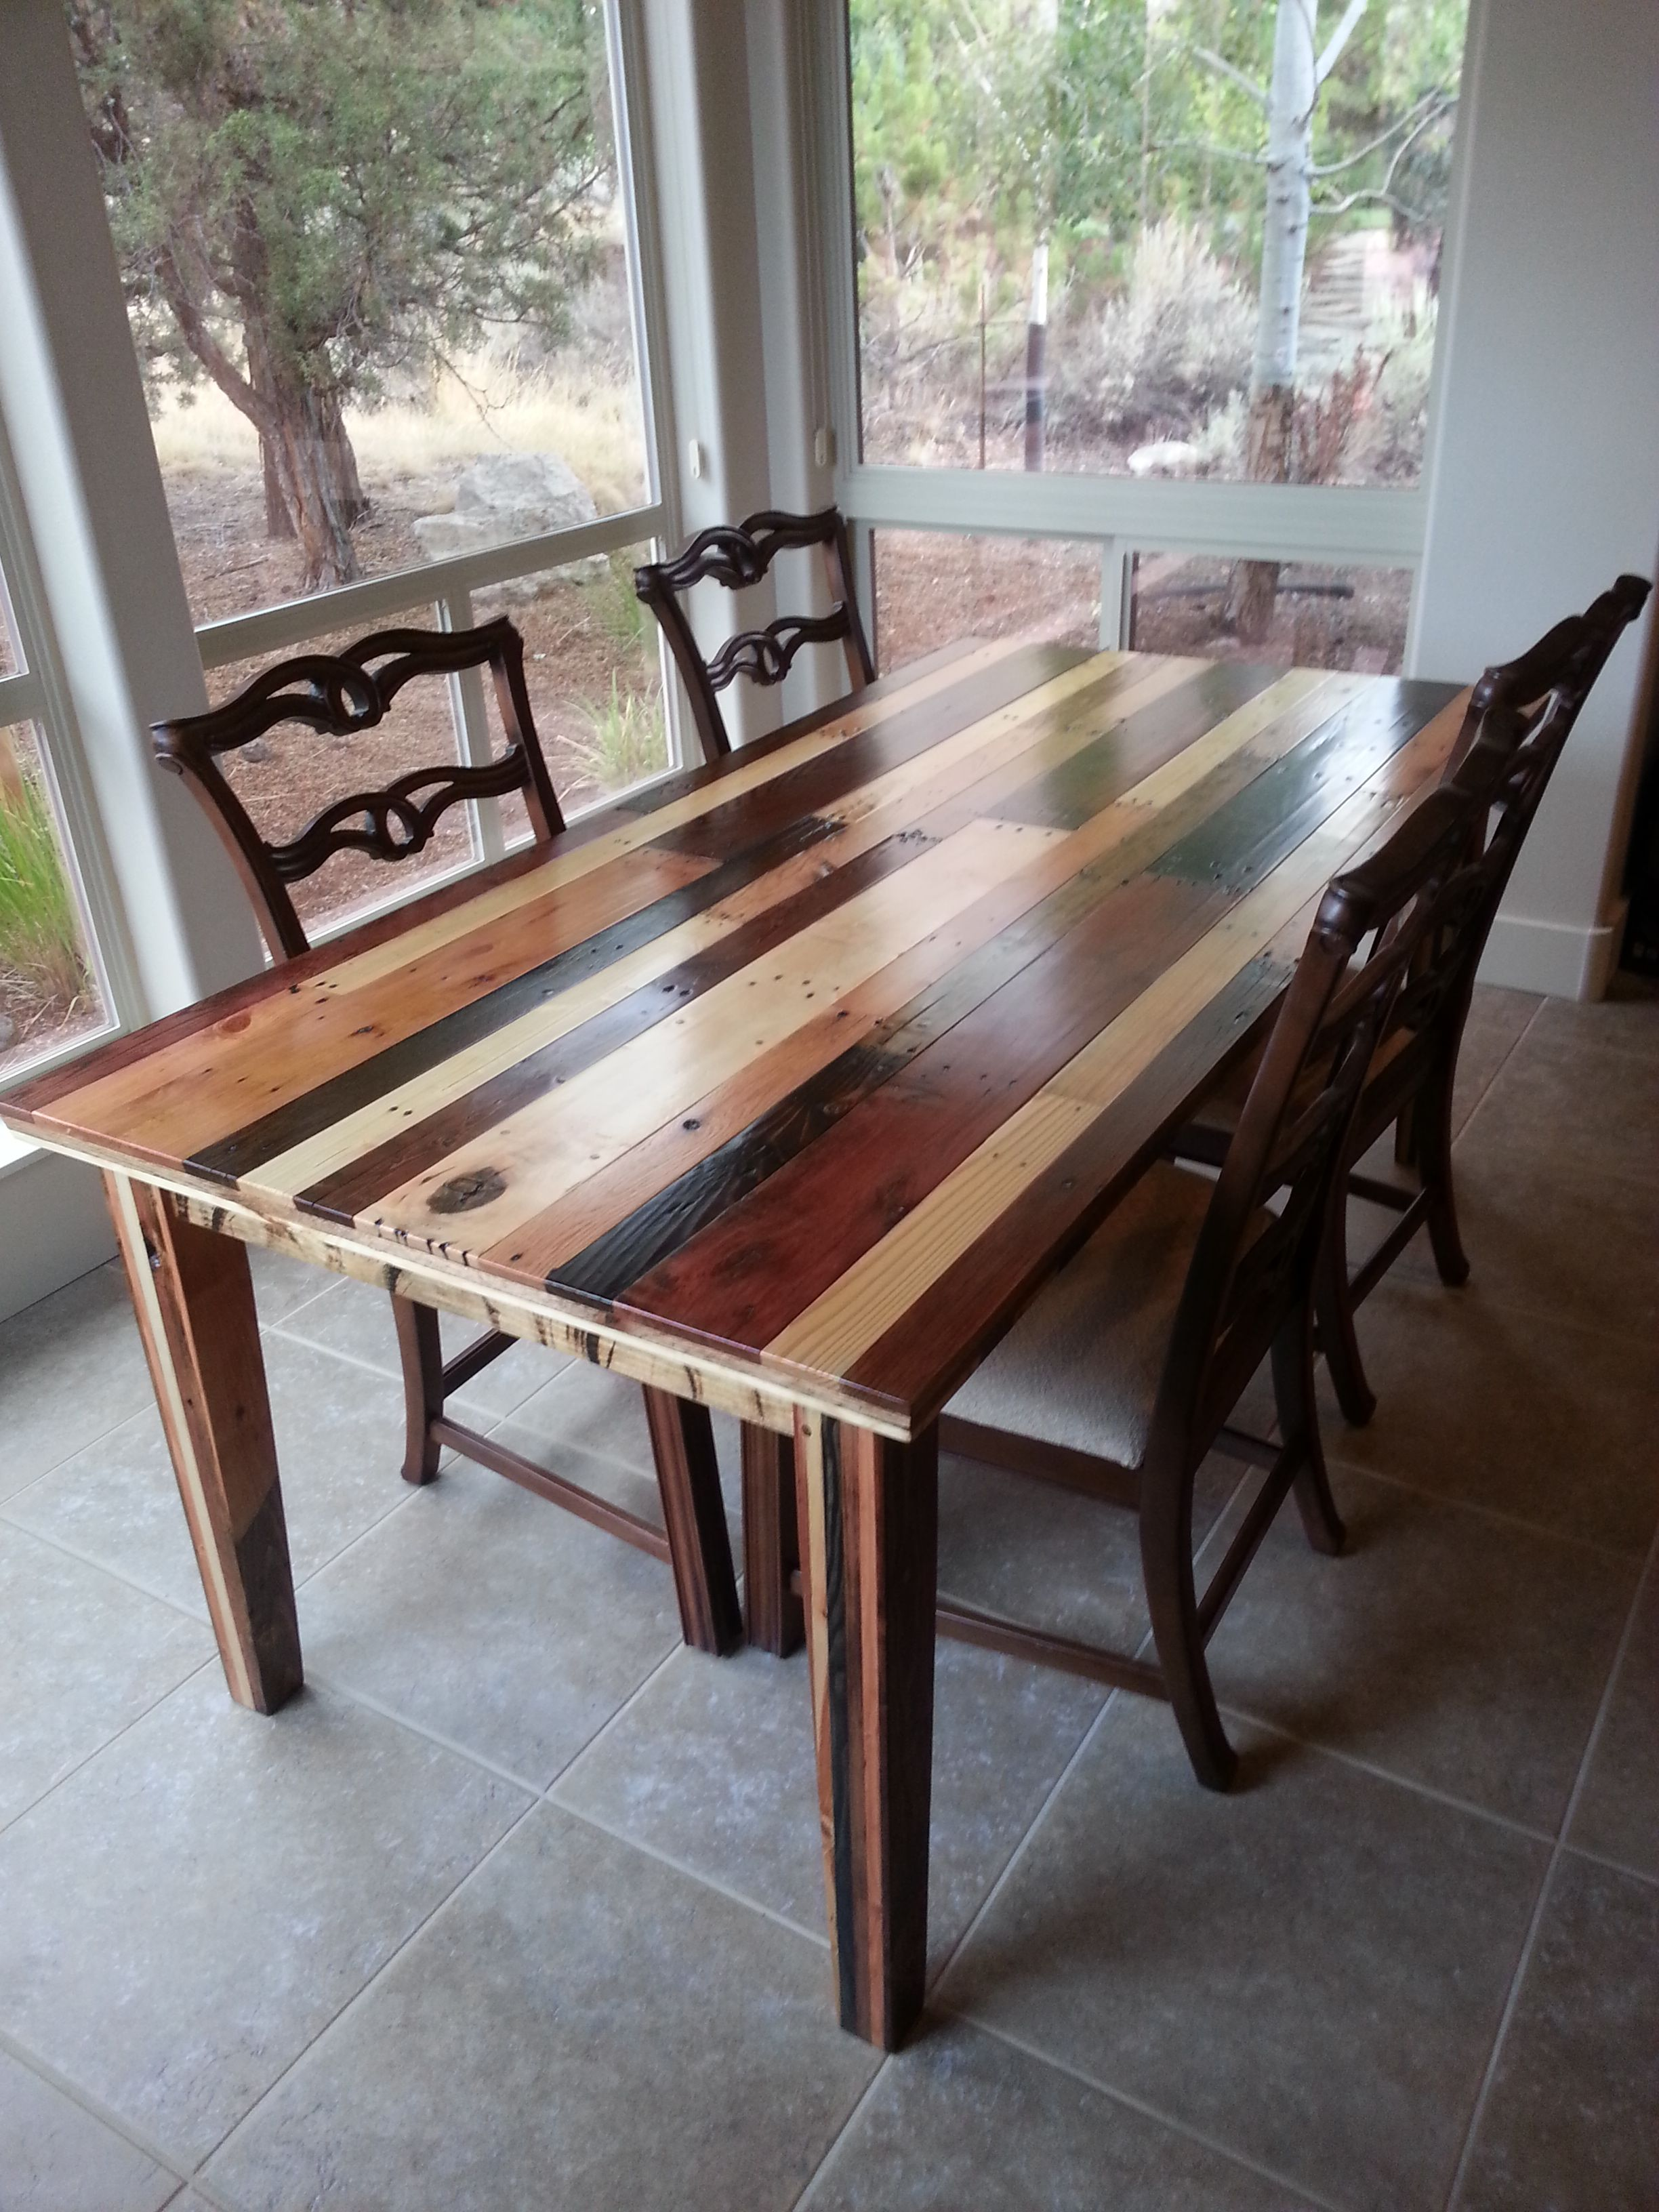 Dining room table I made from pallet wood. | Pallets | Pinterest ...